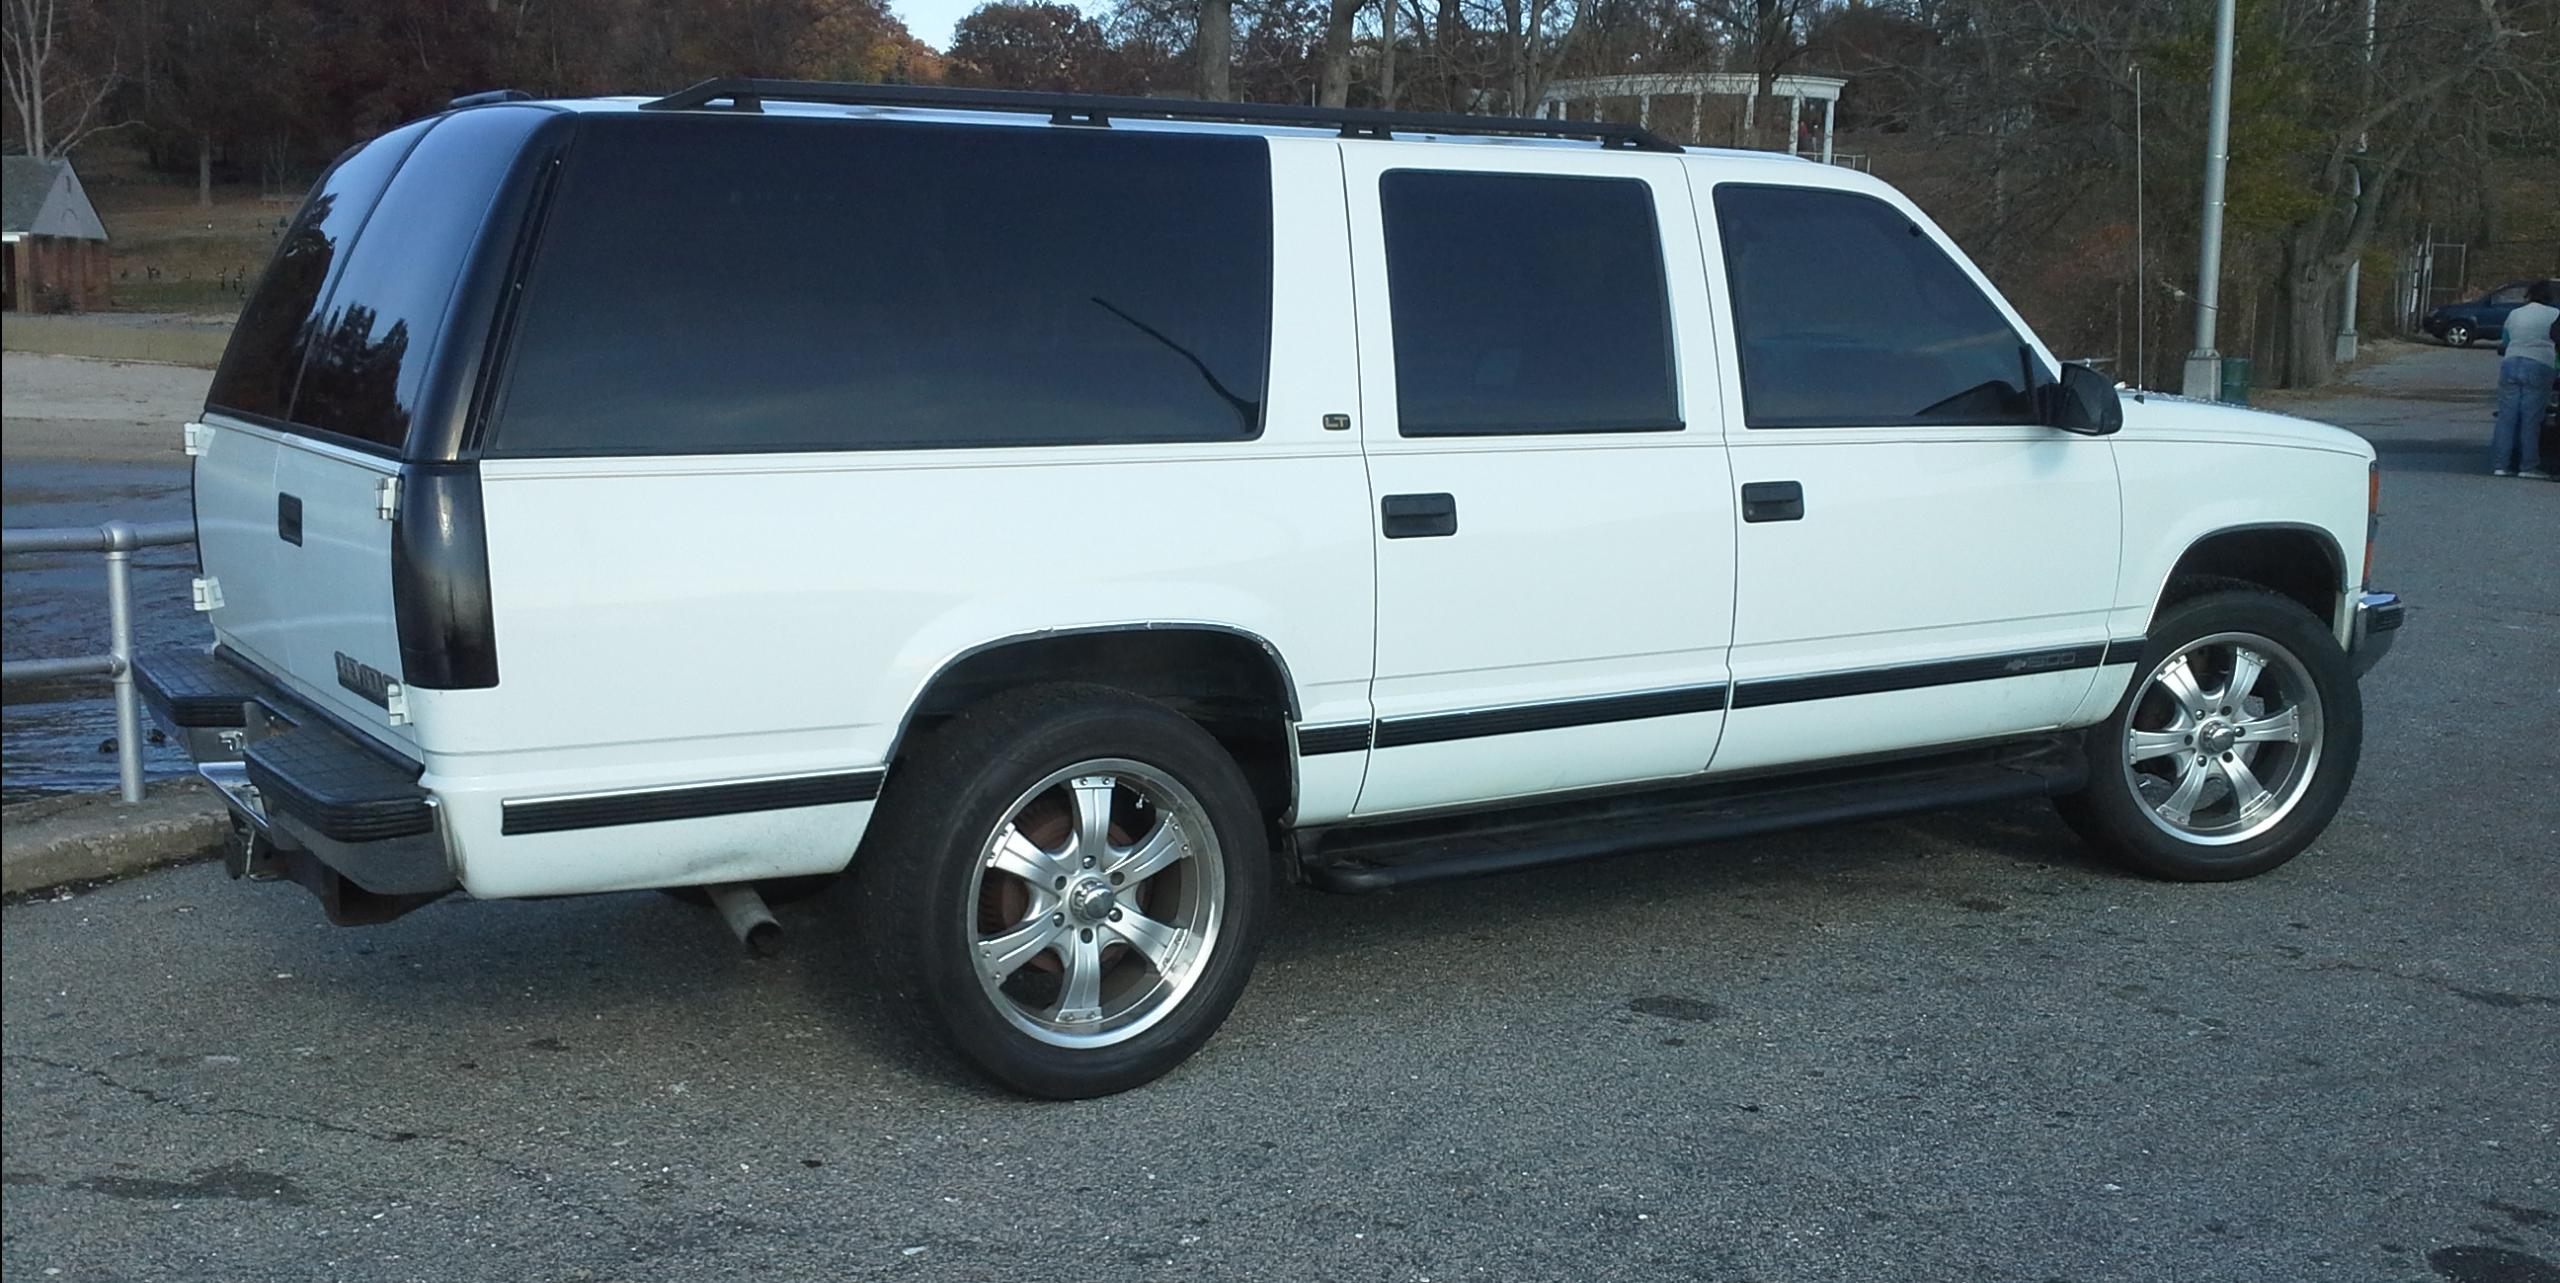 1999 chevrolet suburban 1500 view all 1999 chevrolet suburban 1500 at cardomain. Black Bedroom Furniture Sets. Home Design Ideas